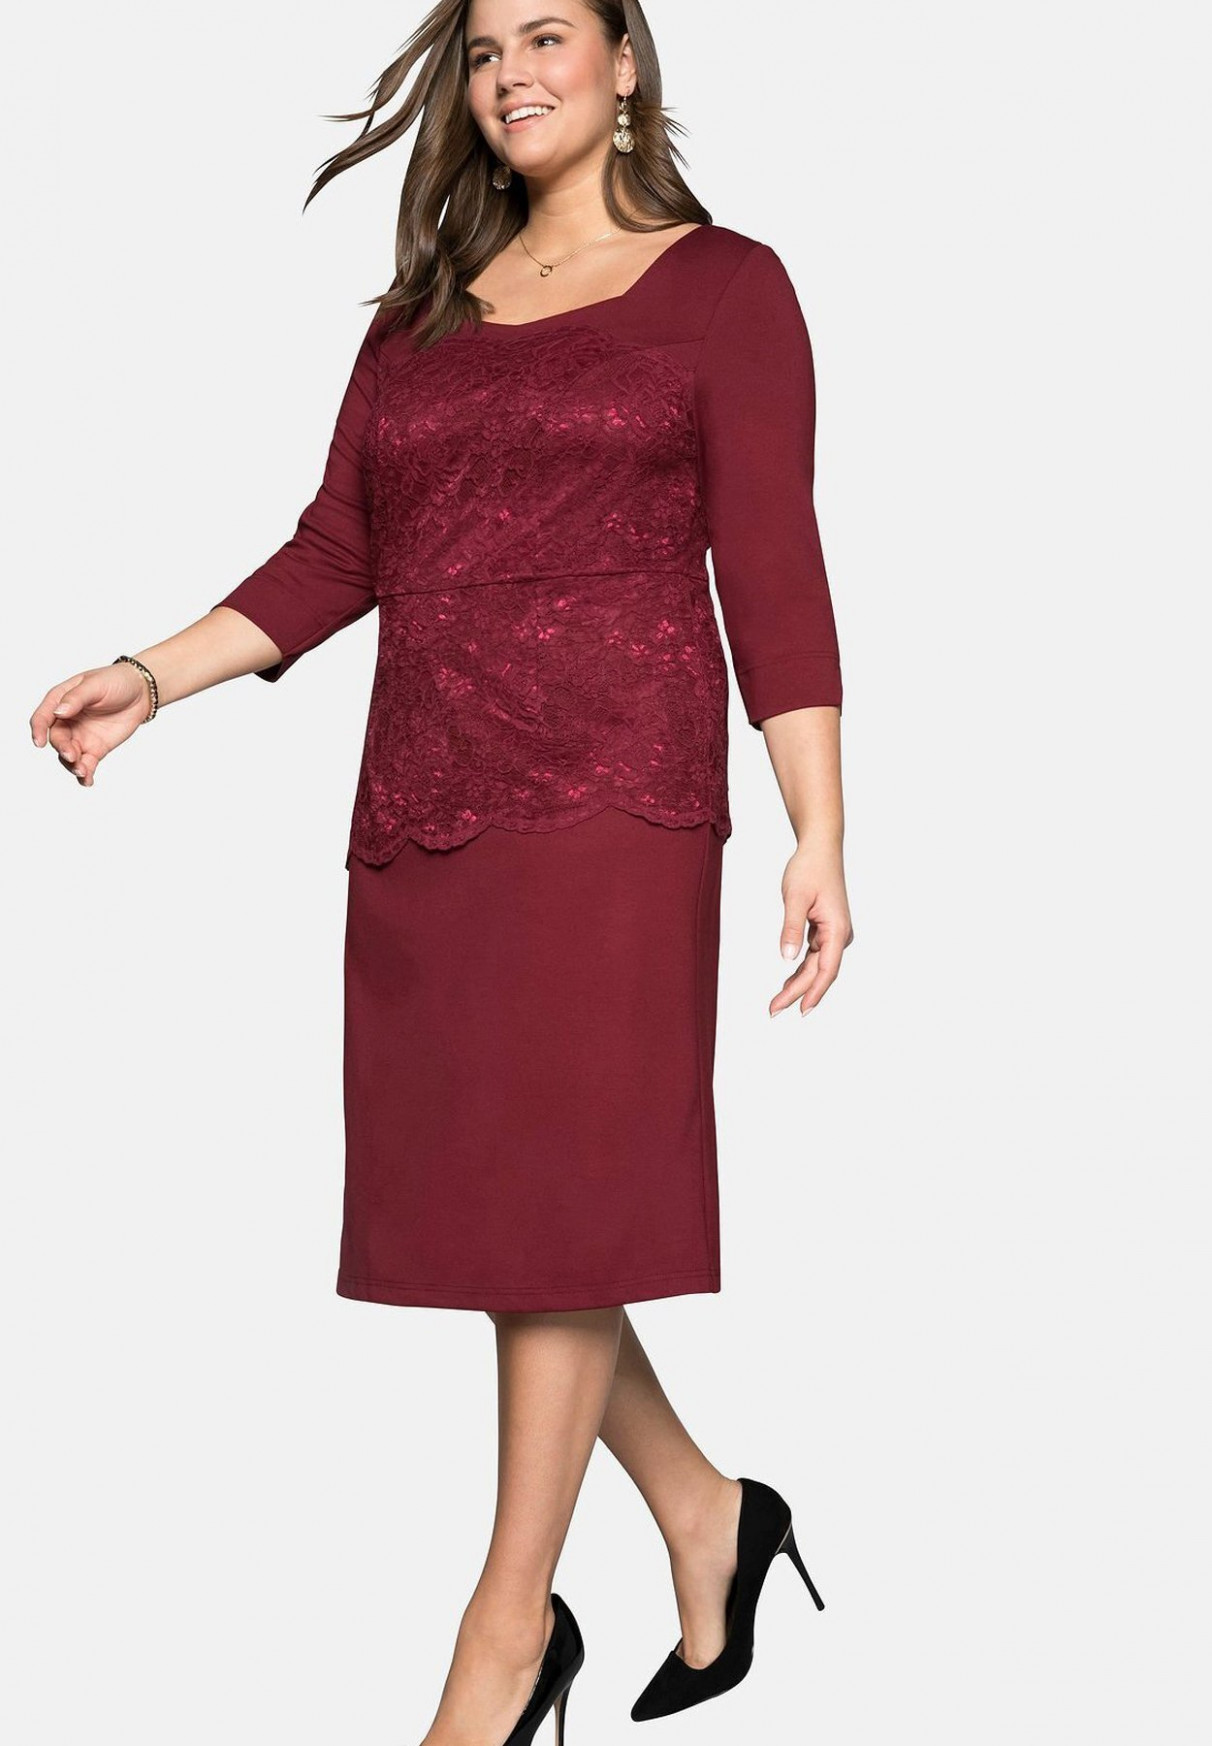 sheego cocktailkleid/festliches kleid rubinrot/bordeaux zalando